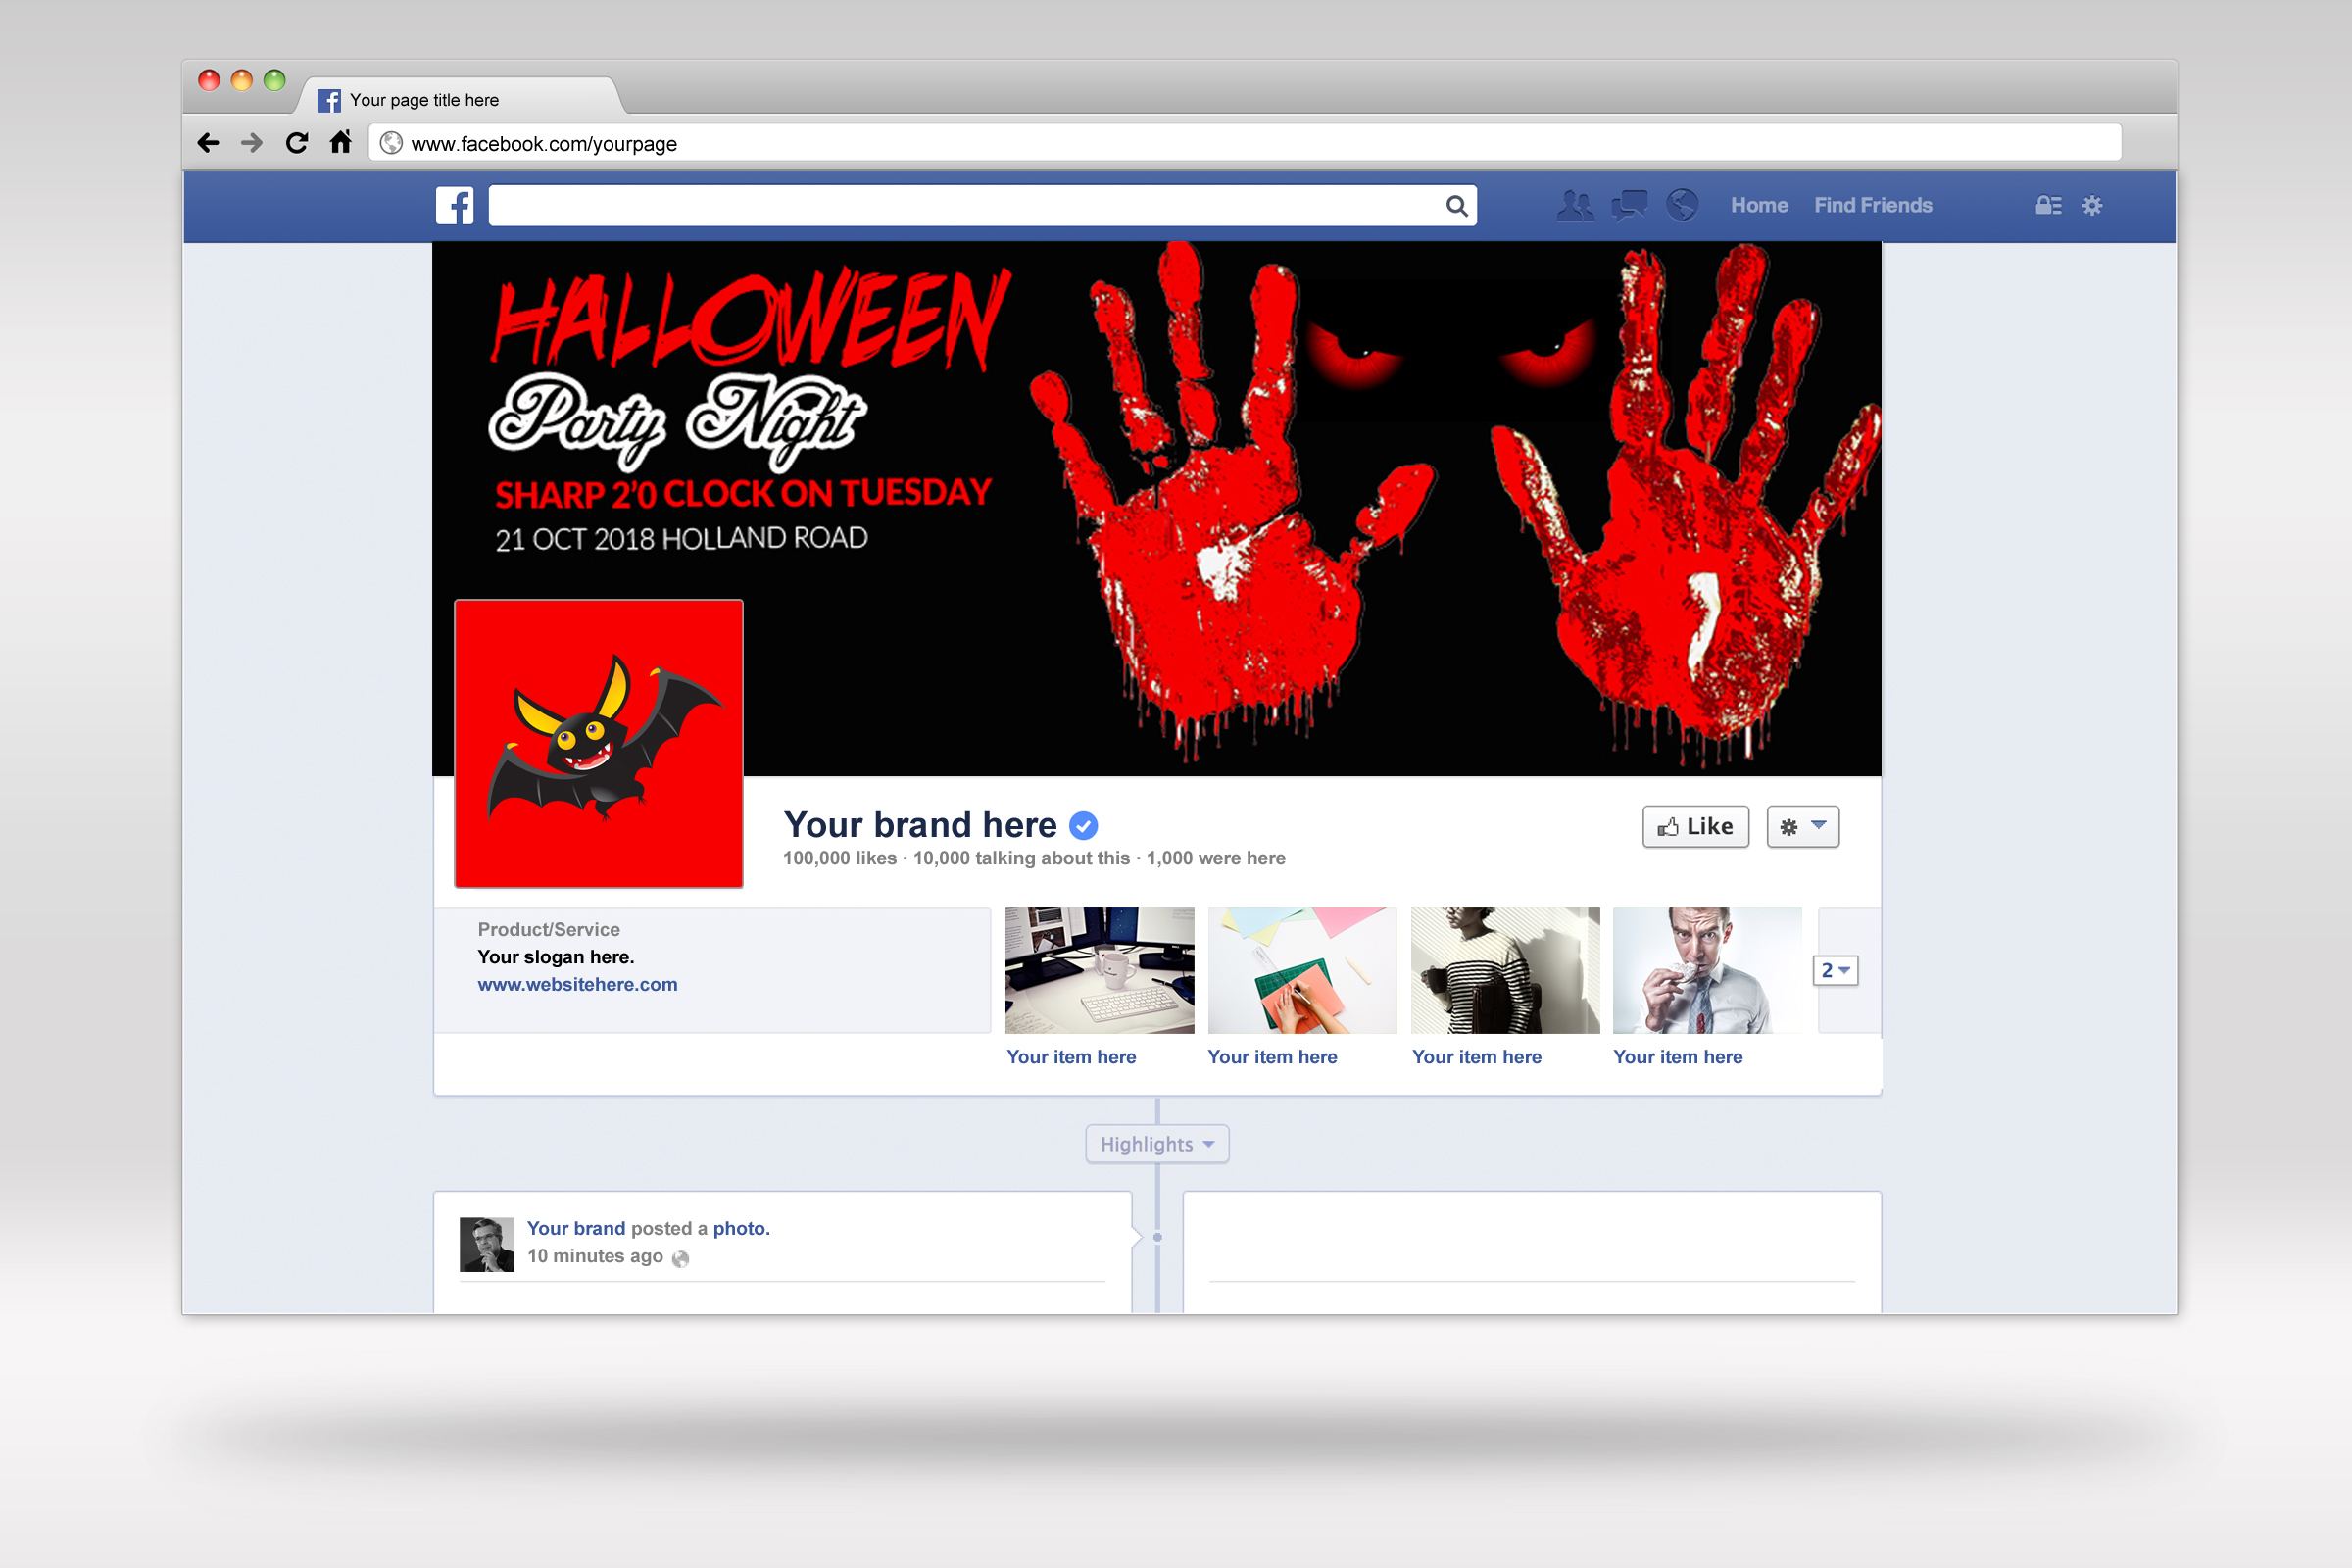 Halloween Party Night Facebook Timeline Cover example image 2